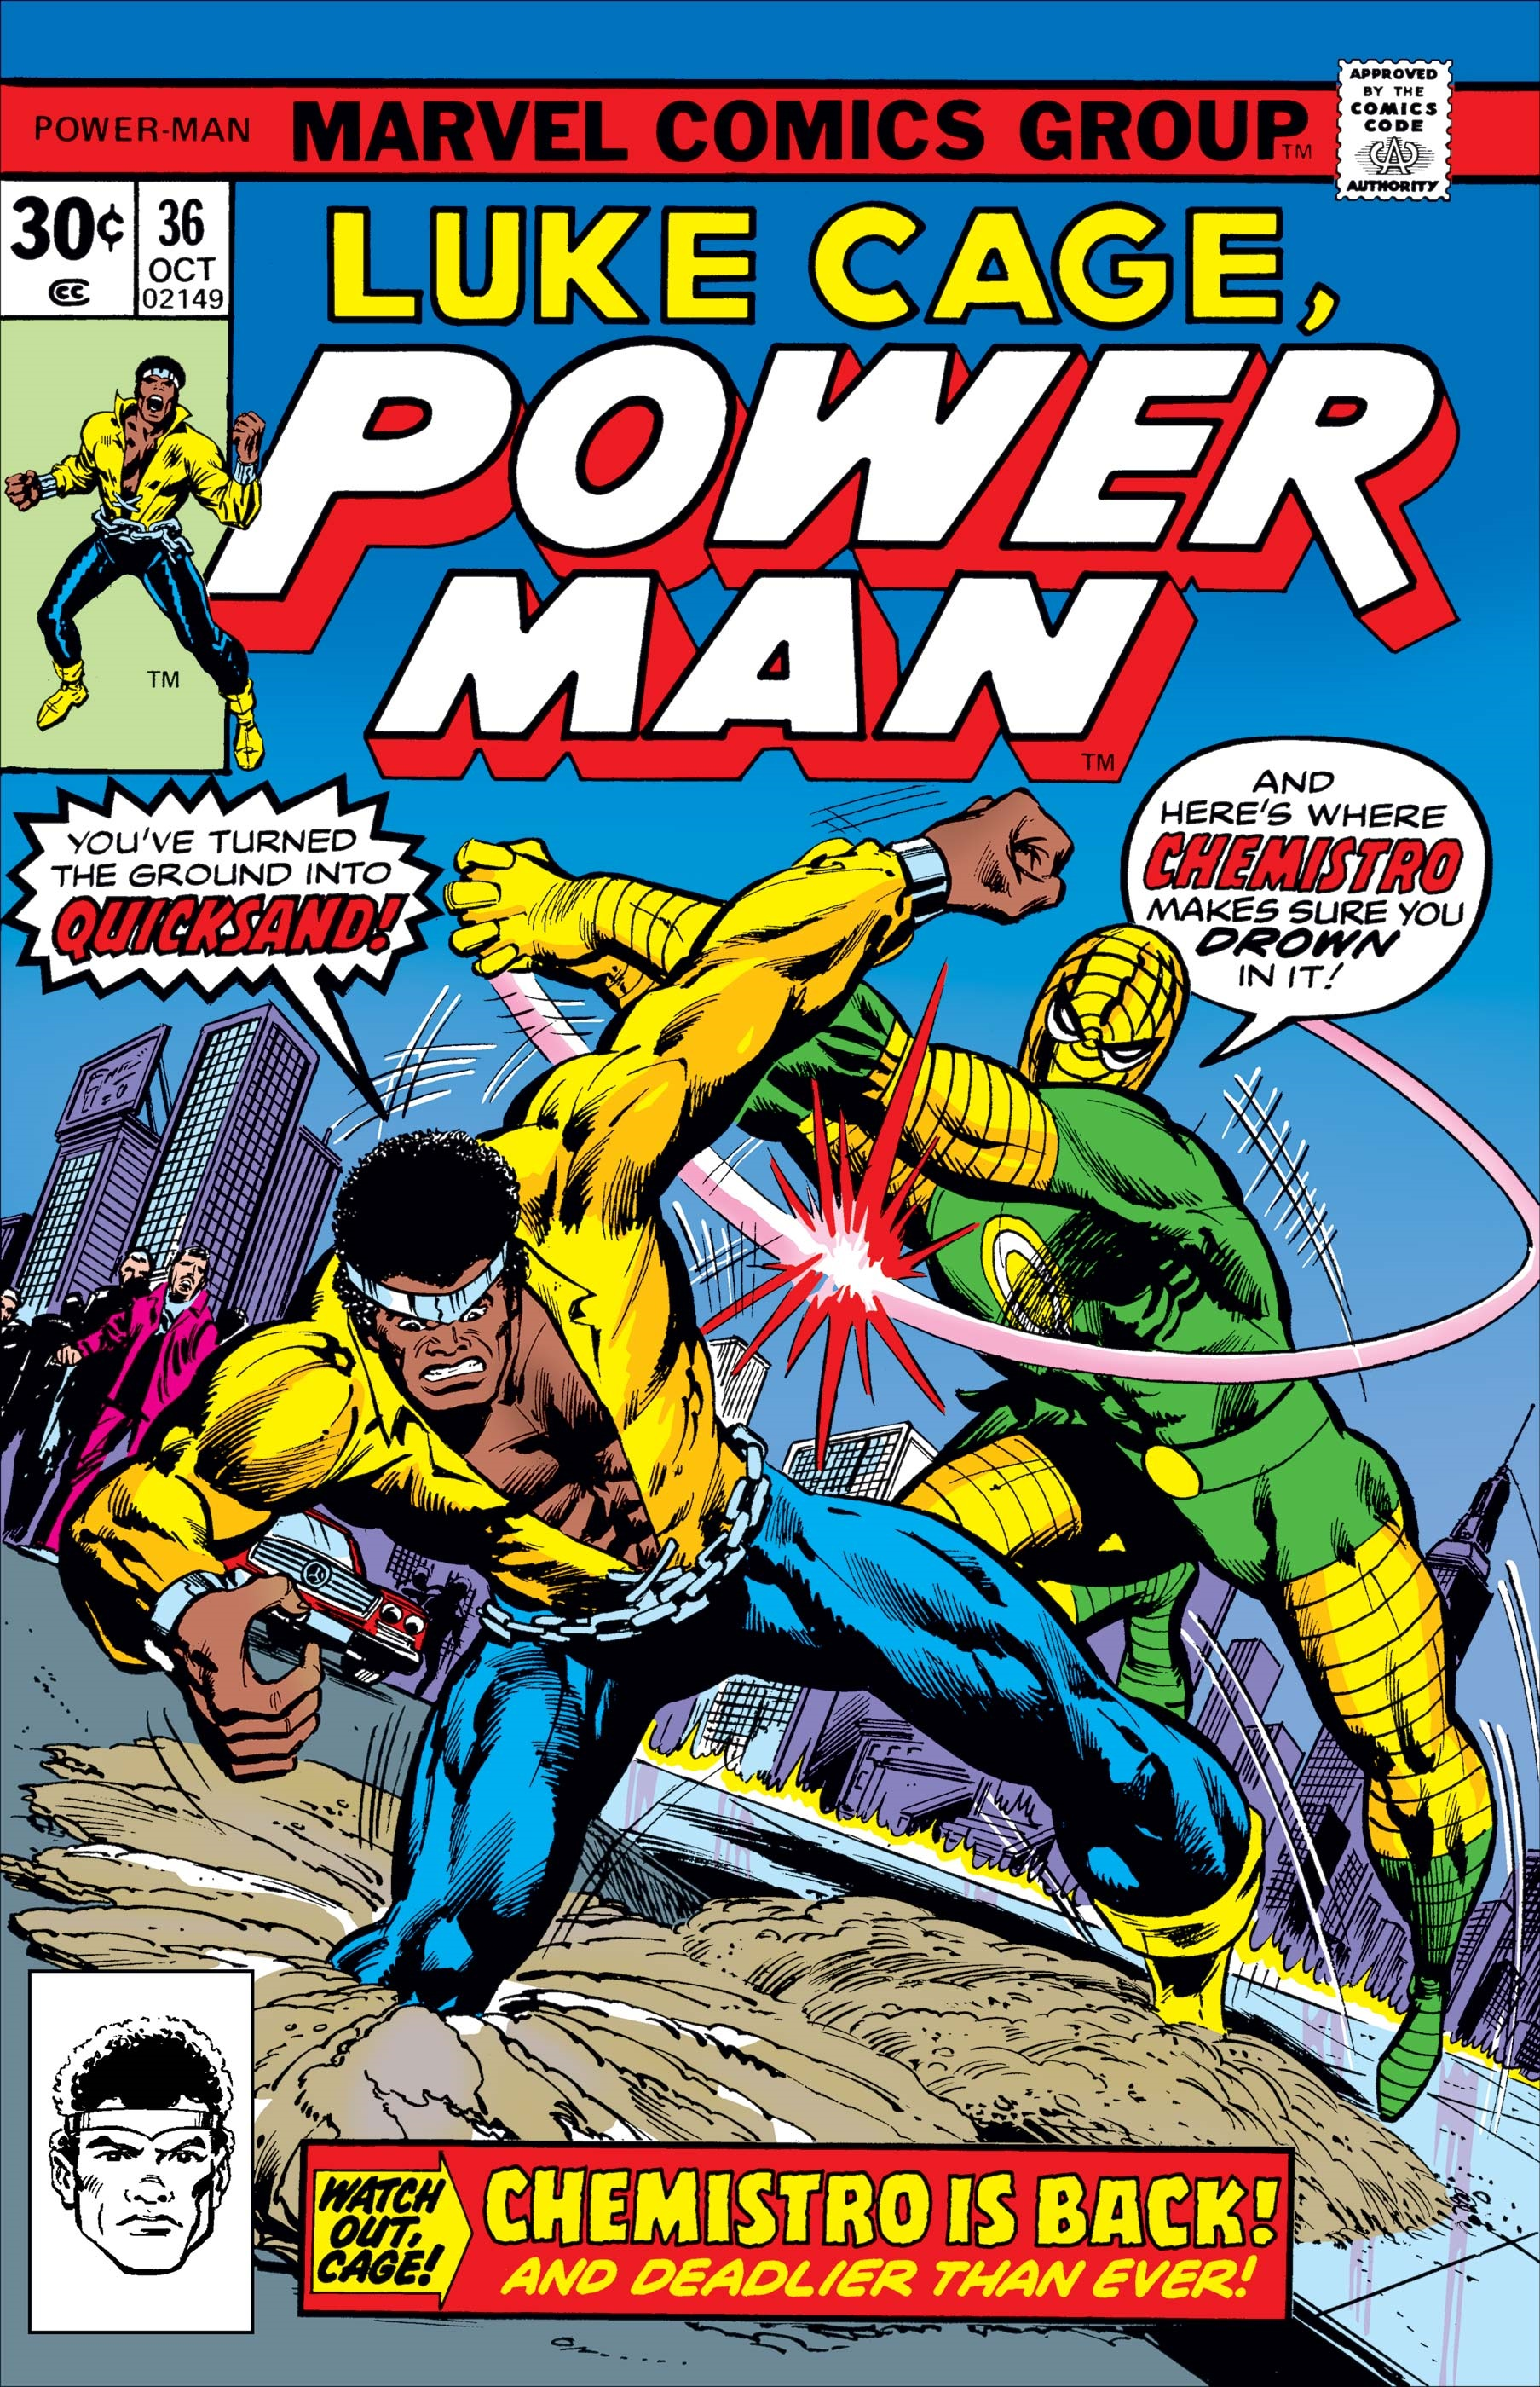 Power Man (1974) #36